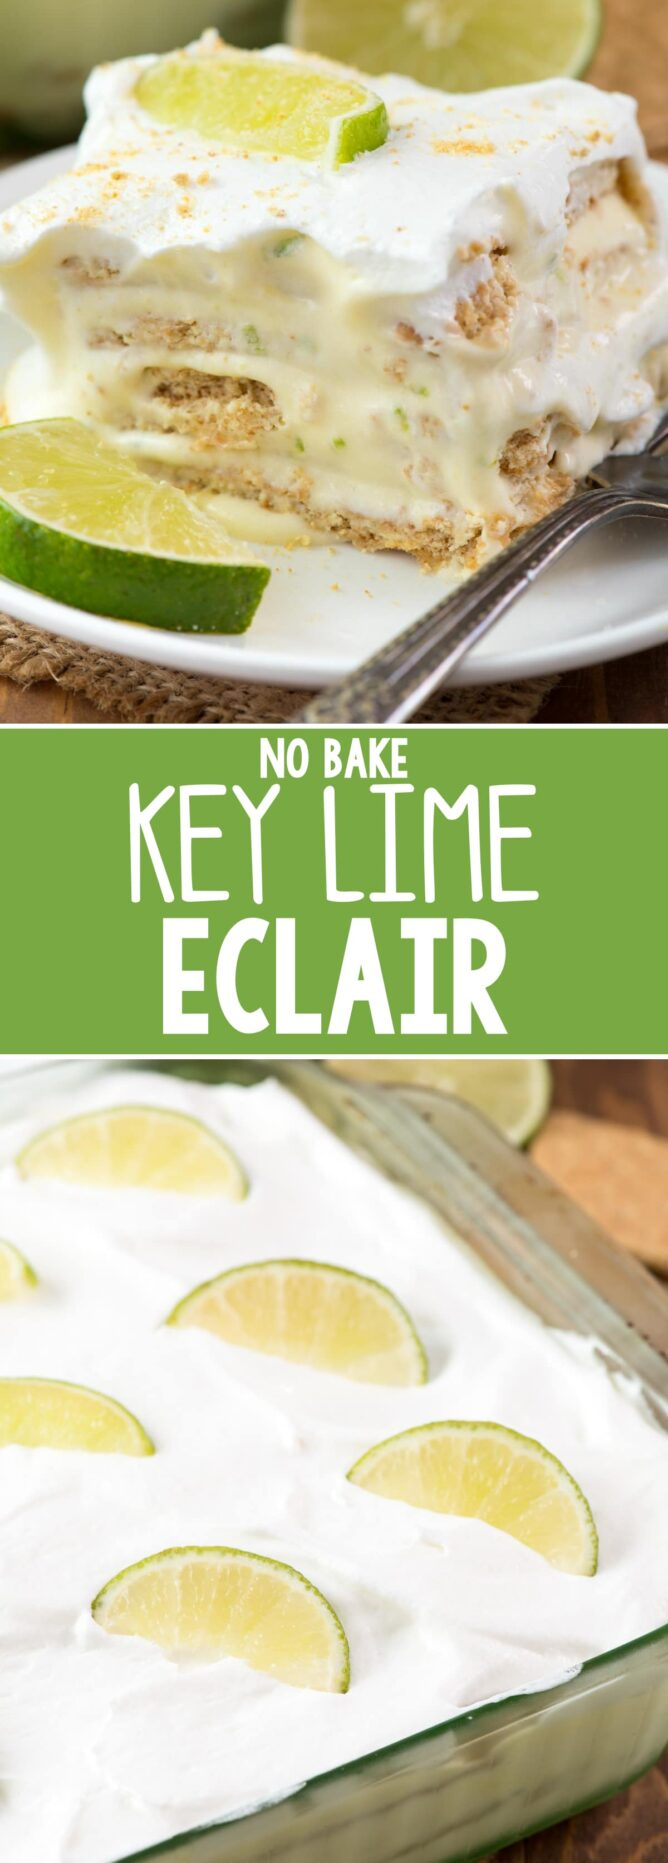 No Bake Key Lime Eclair on a white plate with fork and slices of lime collage photo